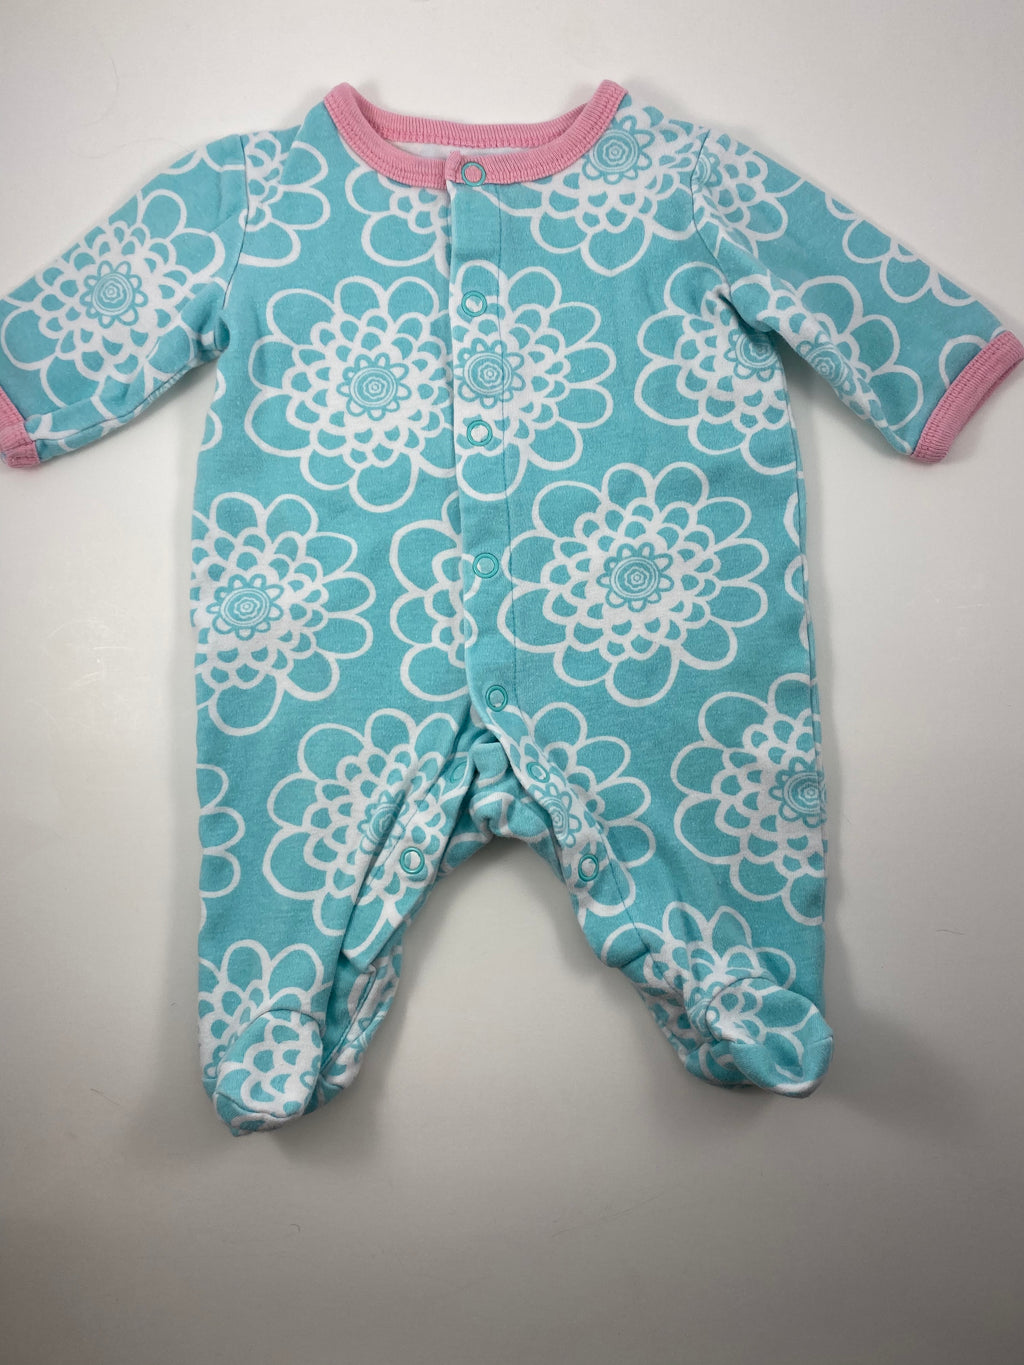 Girl's Long Sleeve Outfit - Size Newborn